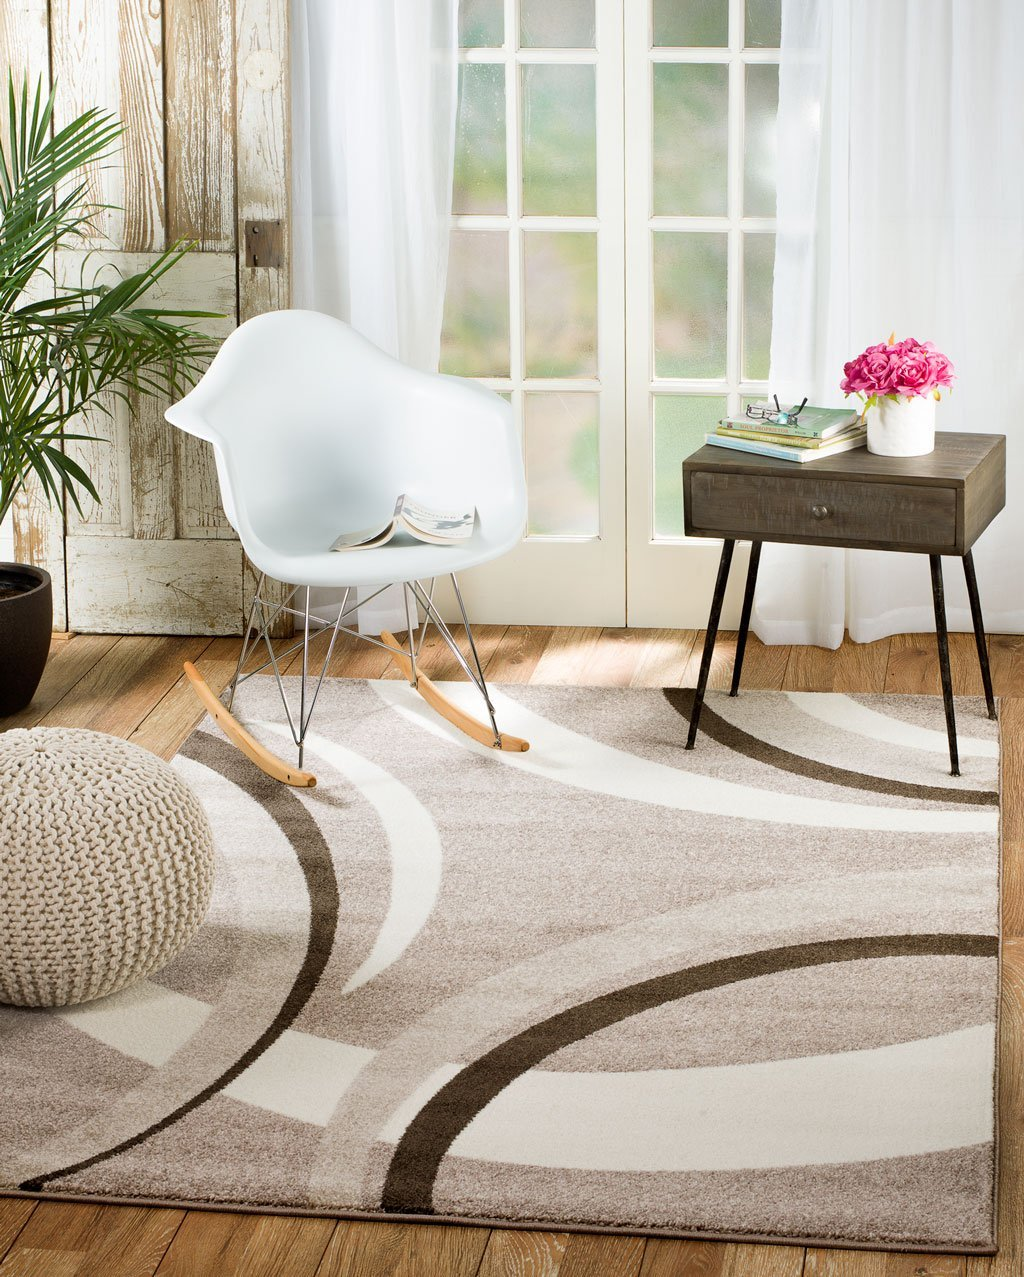 Rio Summit 302 Taupe White Area Rug Modern Abstract Many Sizes Available 3 .6 x 5 , 3 .6 x 5